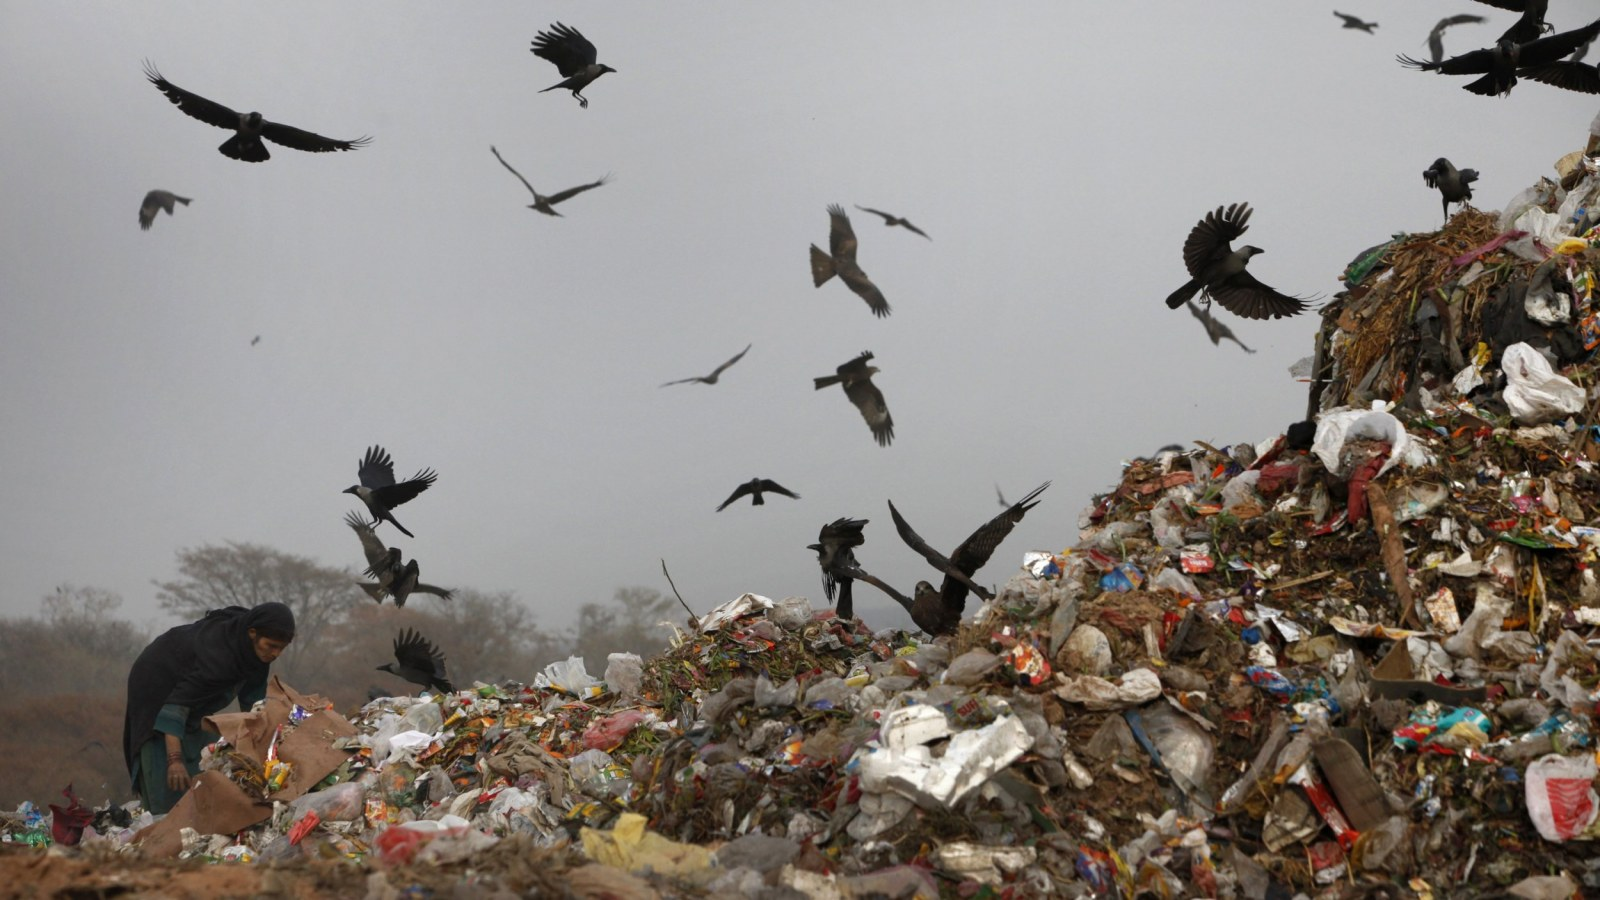 Ecua Garbage Pickup Schedule Christmas 2021 The Plastic Eating Fungi That Could Solve Our Garbage Problem